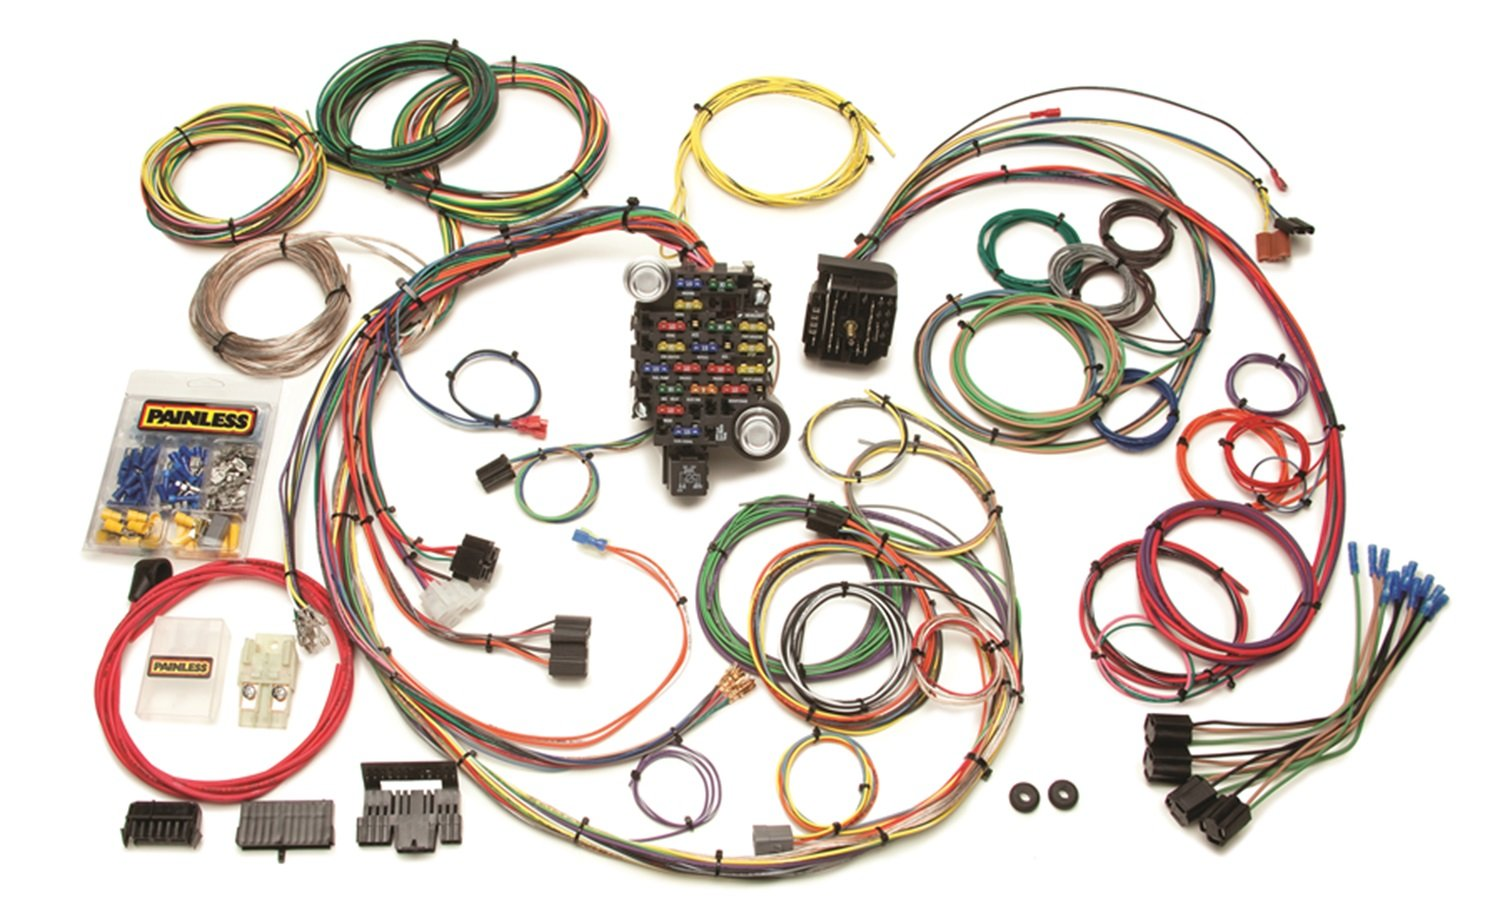 71RvMxx3qDL._SL1500_ amazon com painless 20102 custom wiring harness automotive painless wiring harness at gsmx.co